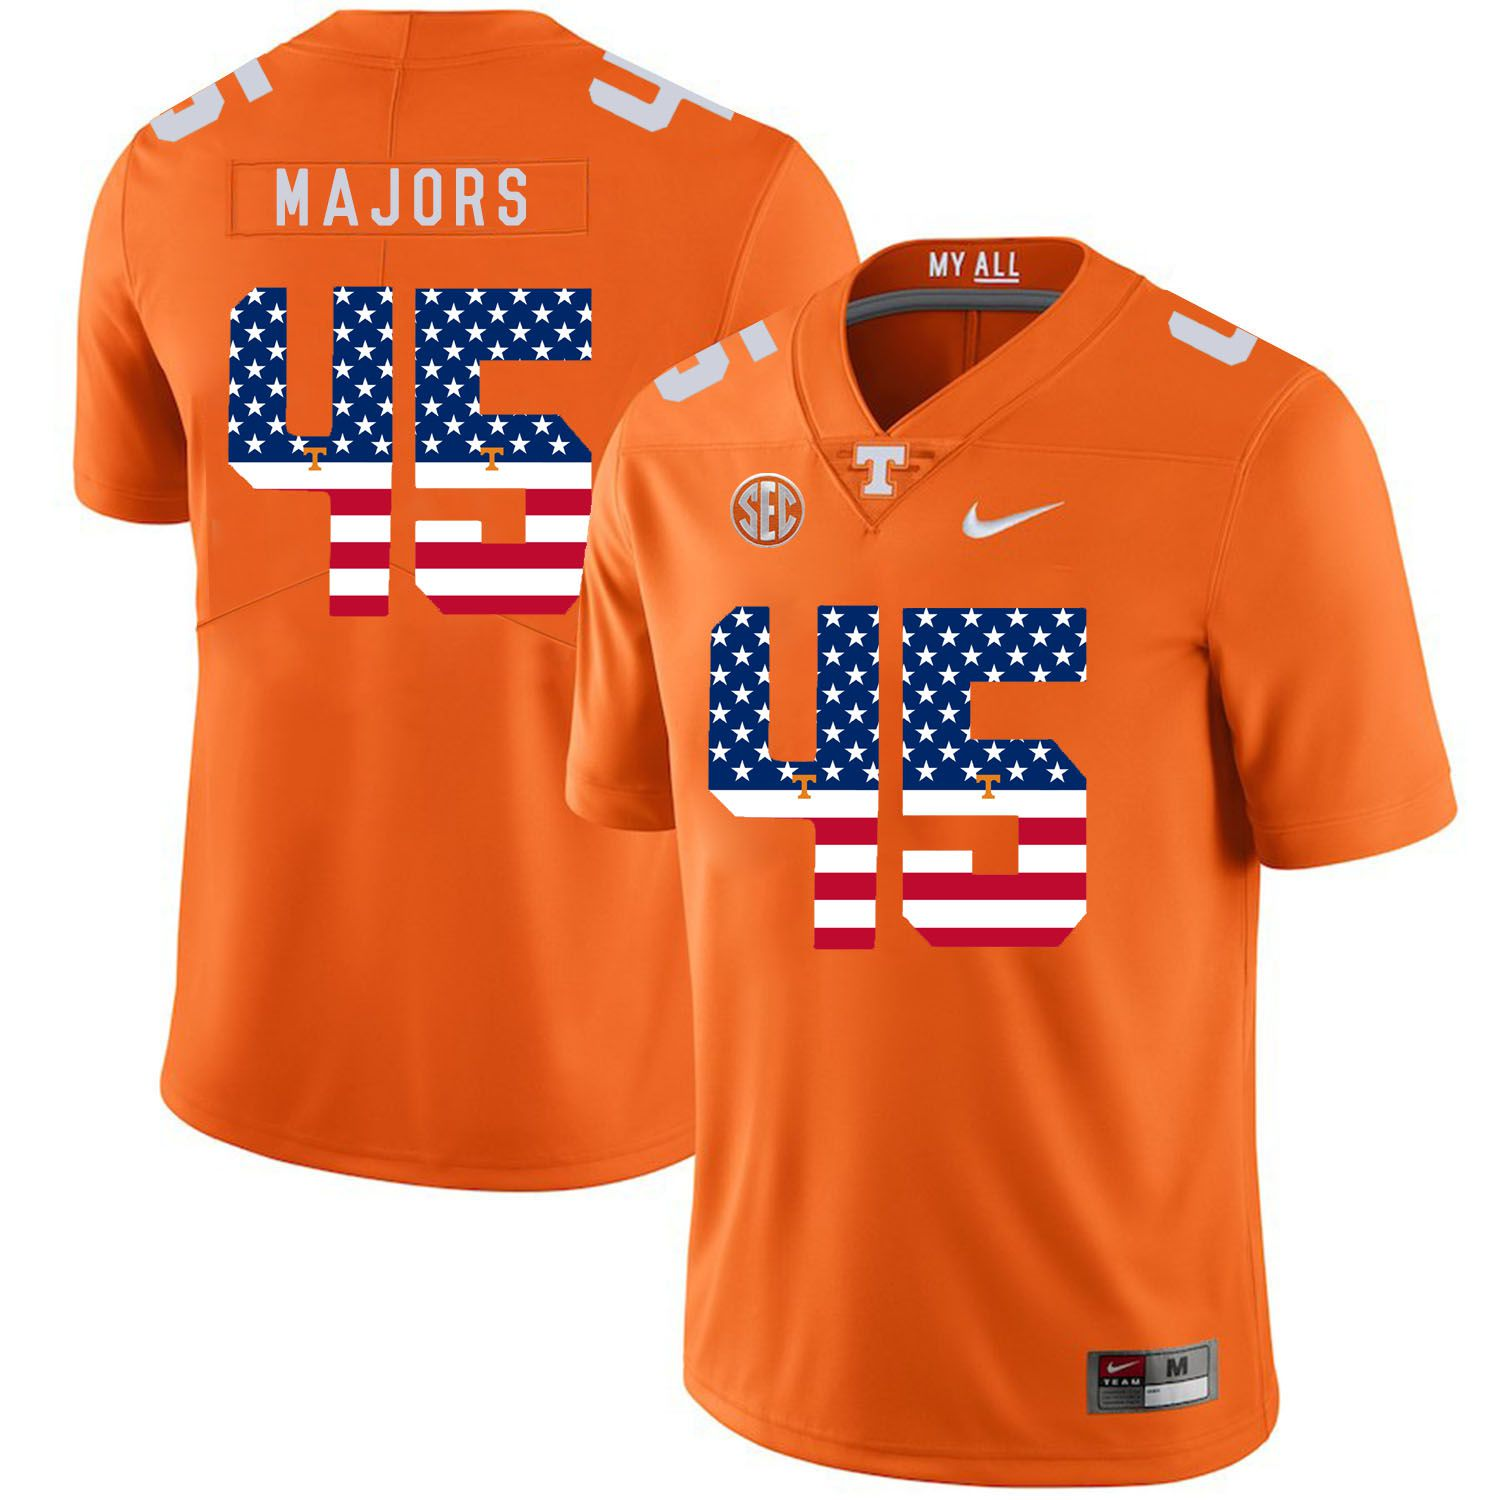 Men Tennessee Volunteers 45 Majors Orange Flag Customized NCAA Jerseys